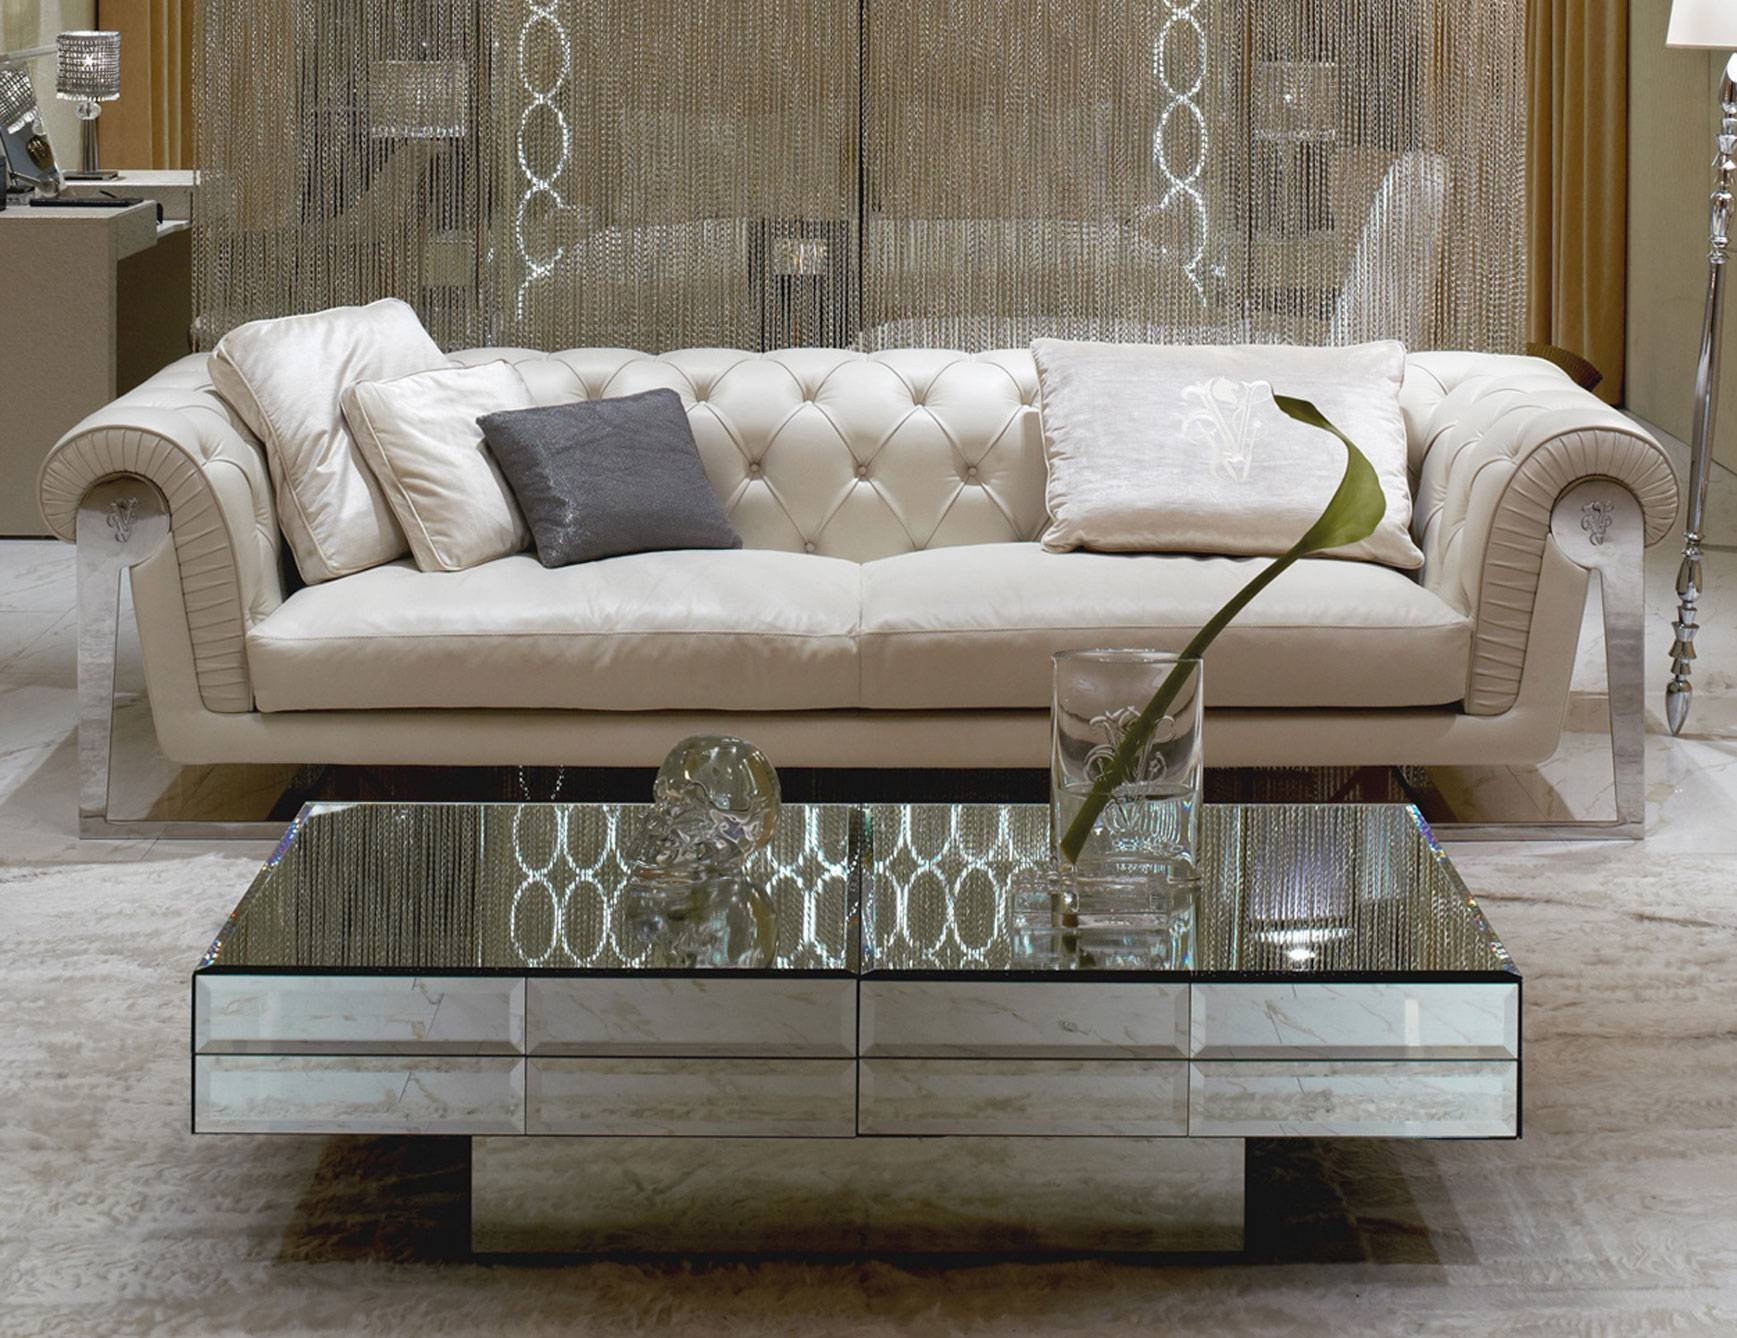 Rectangular Mirrored Coffee Table With One Big Leg intended for Oval Mirrored Coffee Tables (Image 27 of 30)